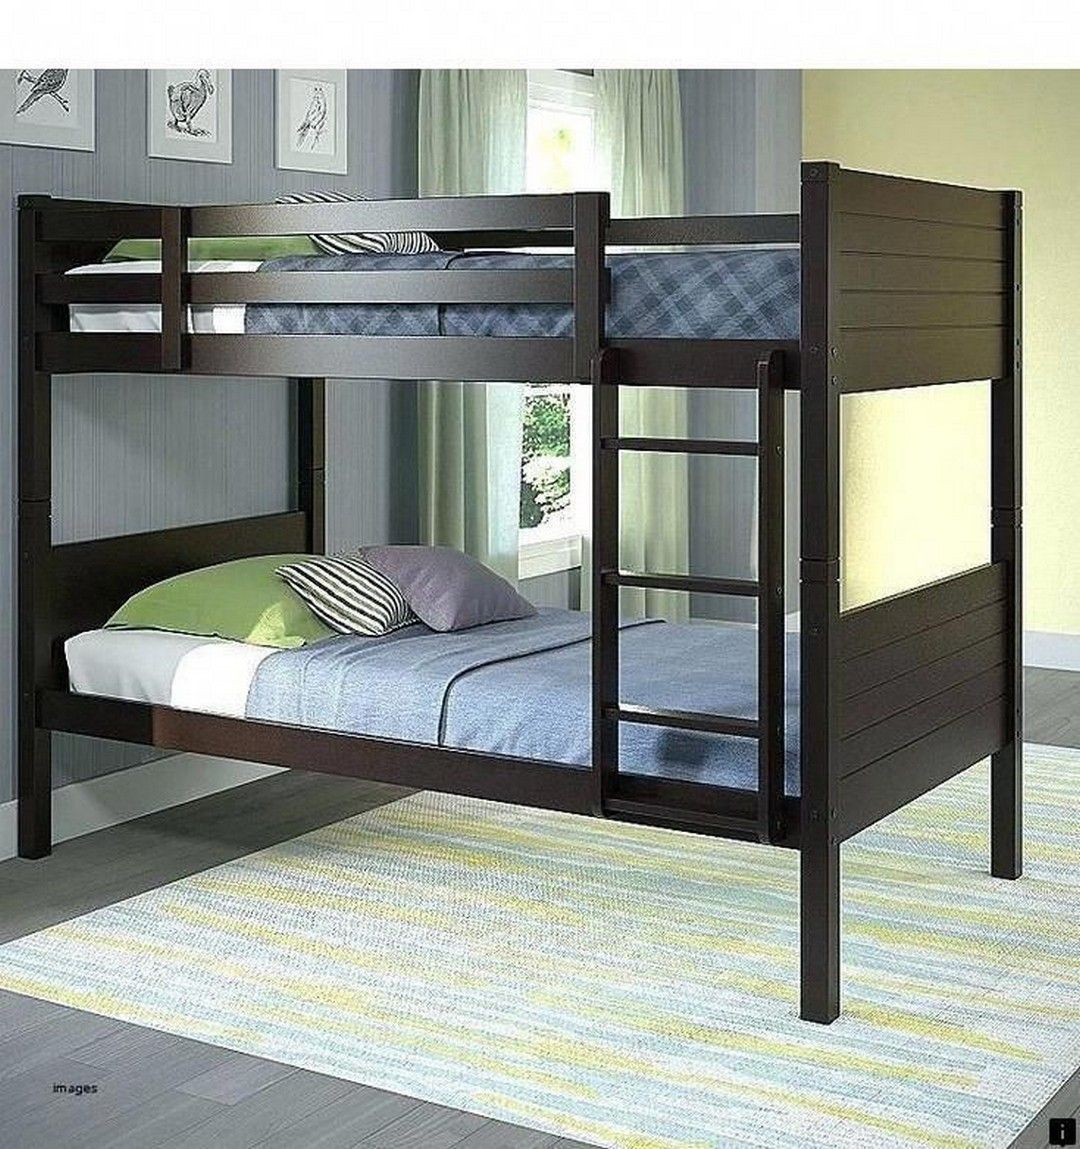 63 Awesome Double Bed Idea Bunk bed with trundle, Bed